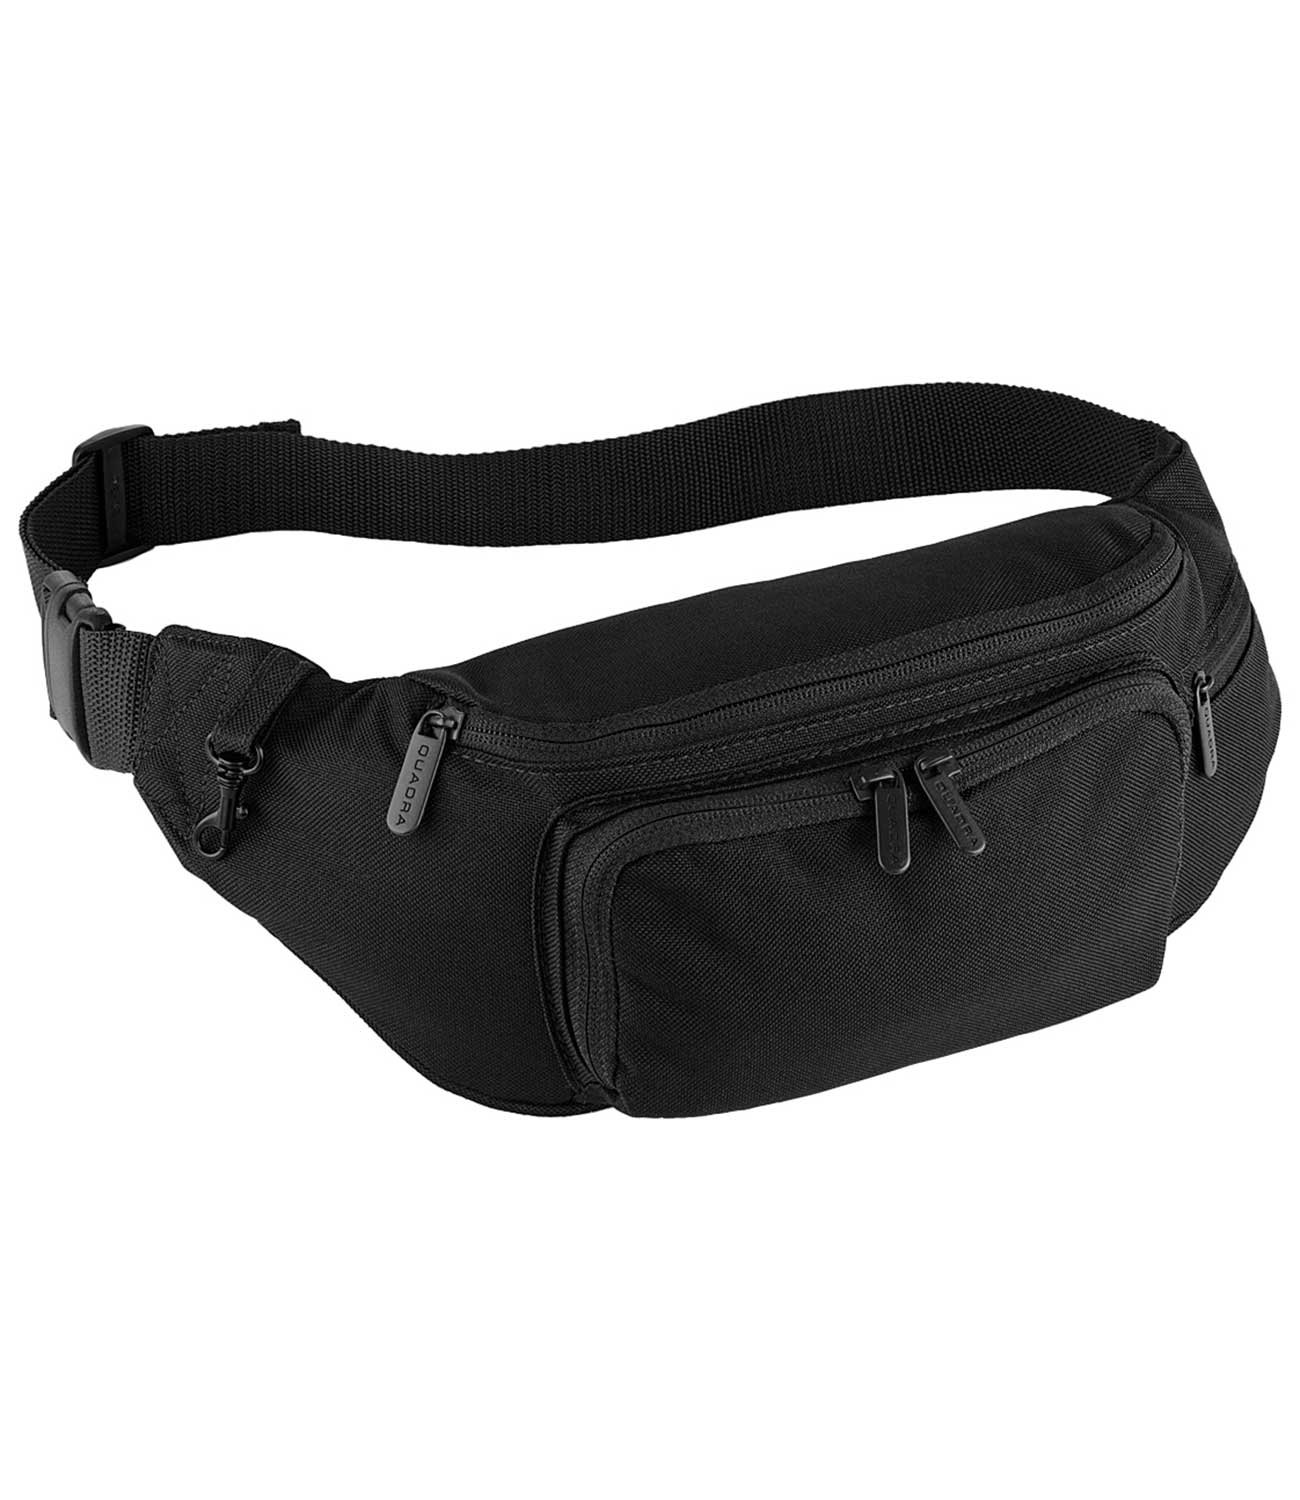 New Quadra Classic Travel Belt Hip Bum Bag Black One Size QD012BLAC